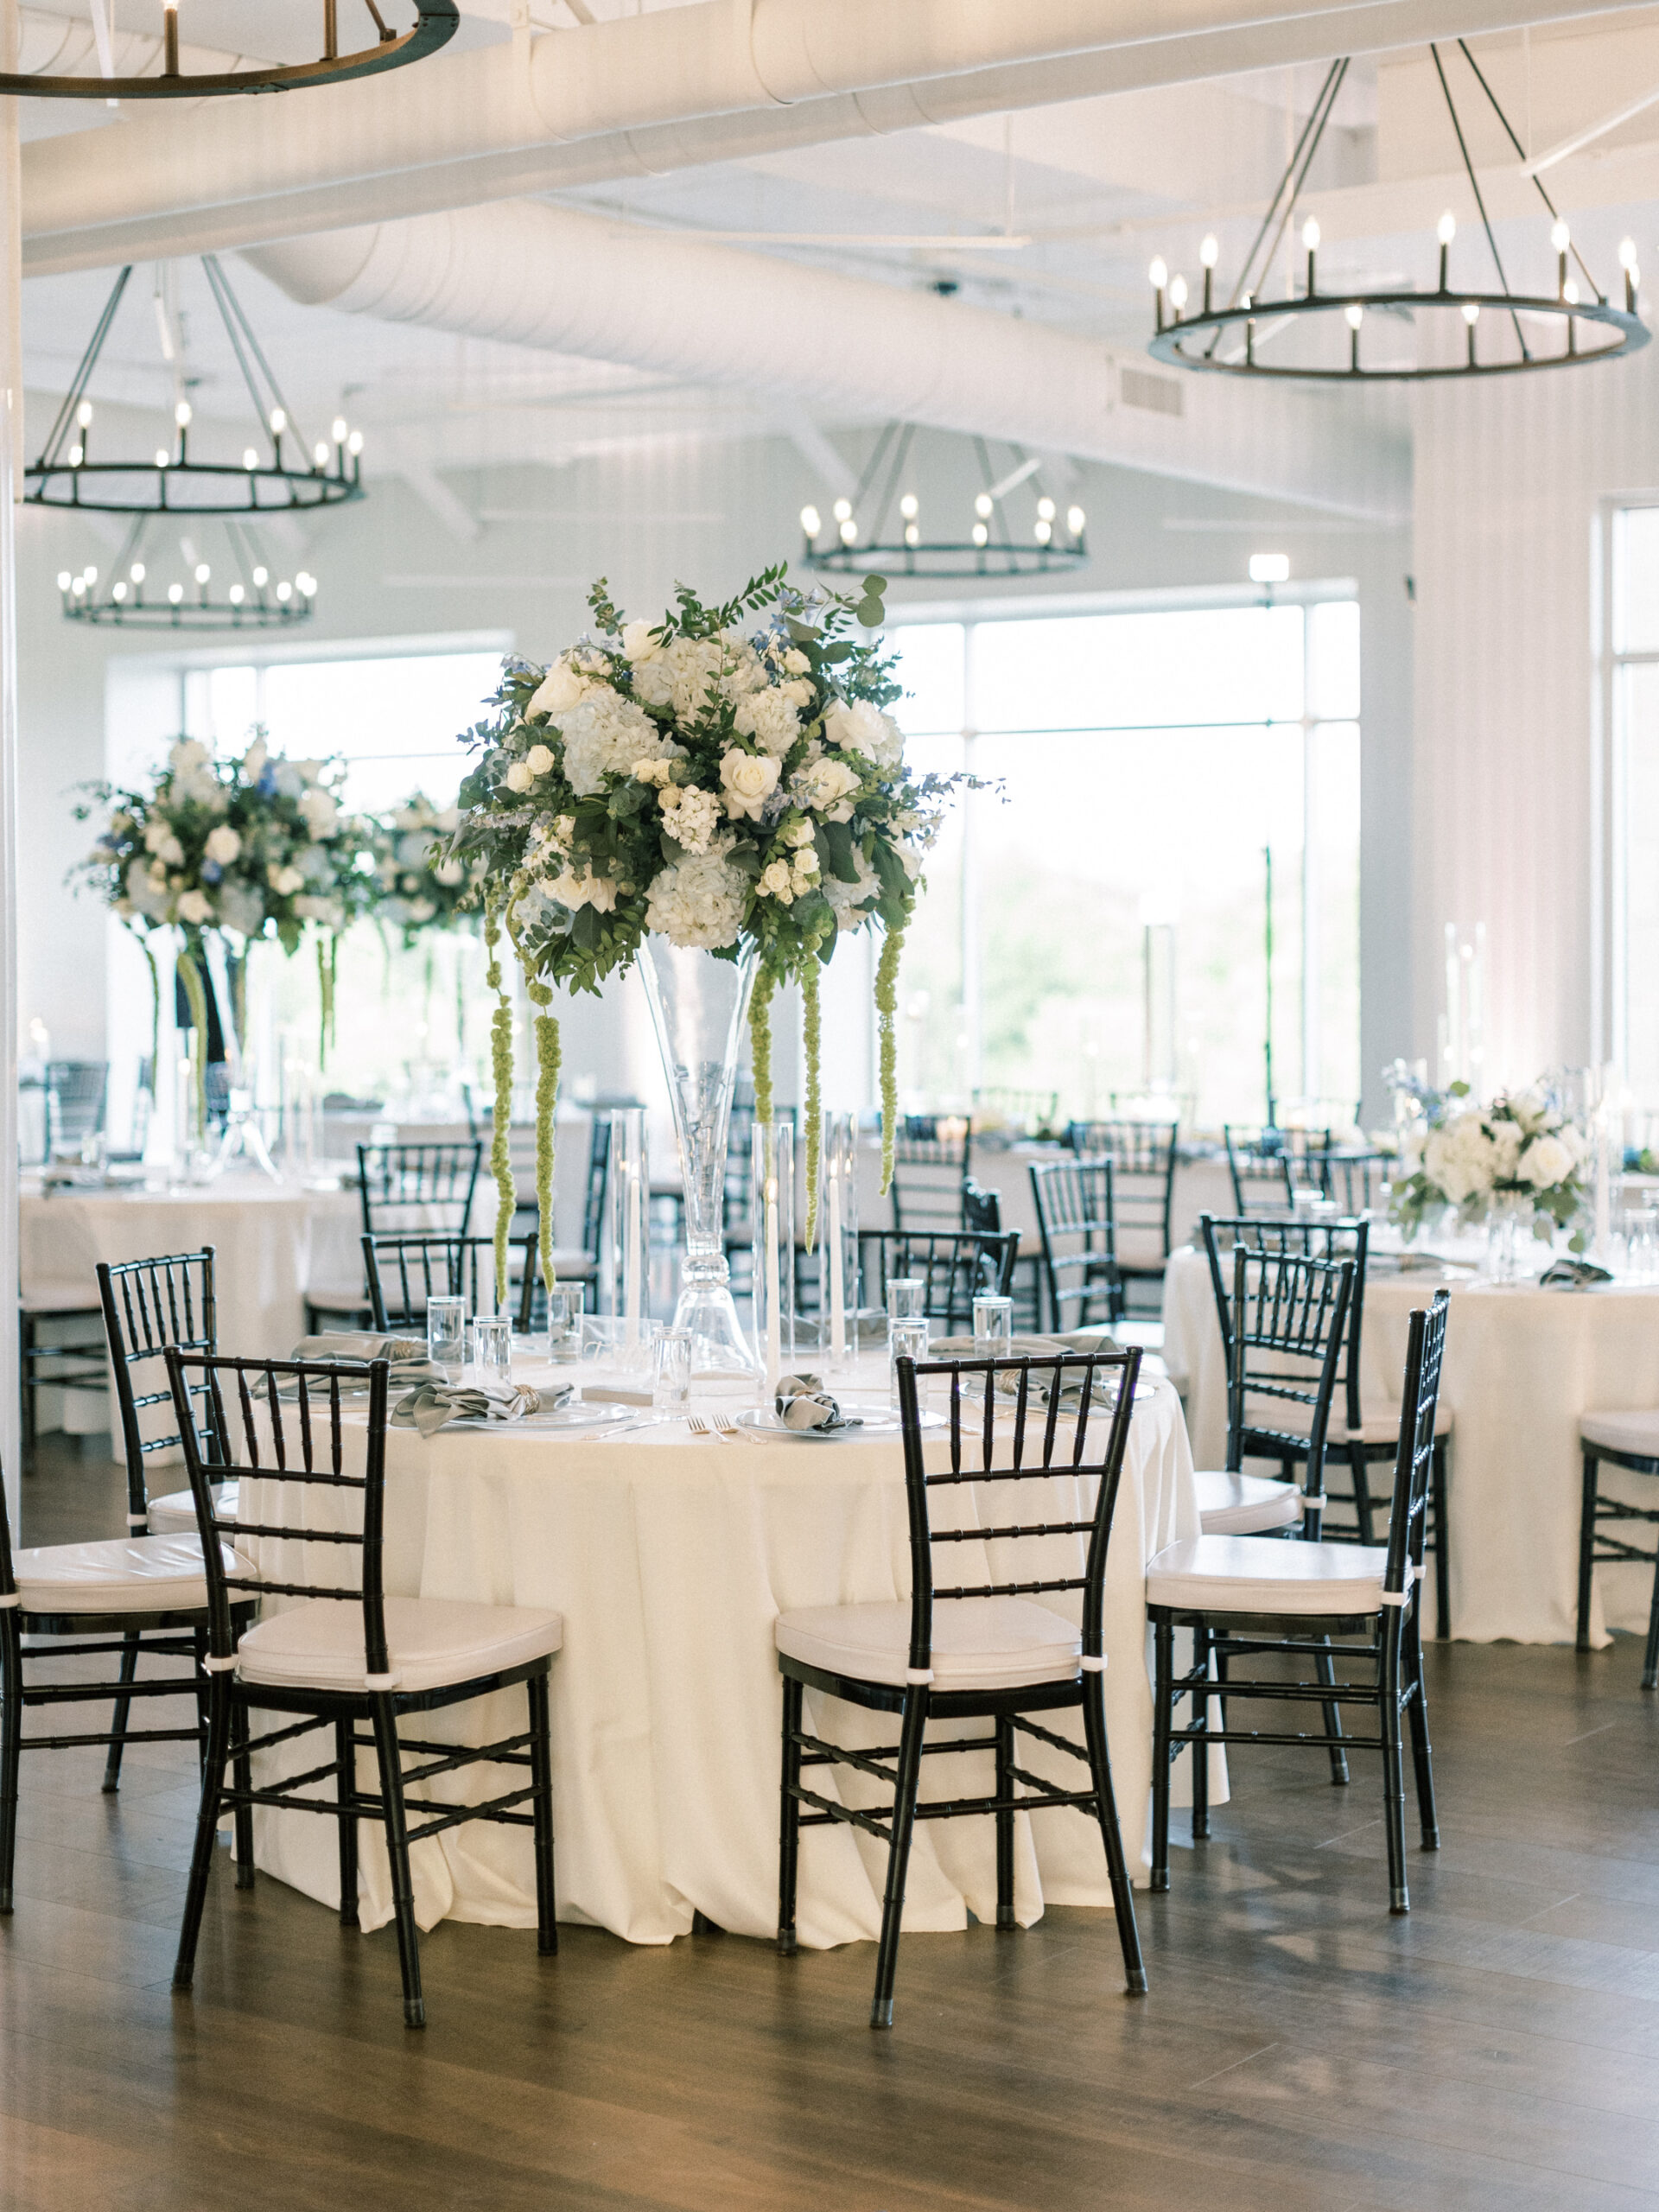 Wedding reception in spacious banquet room